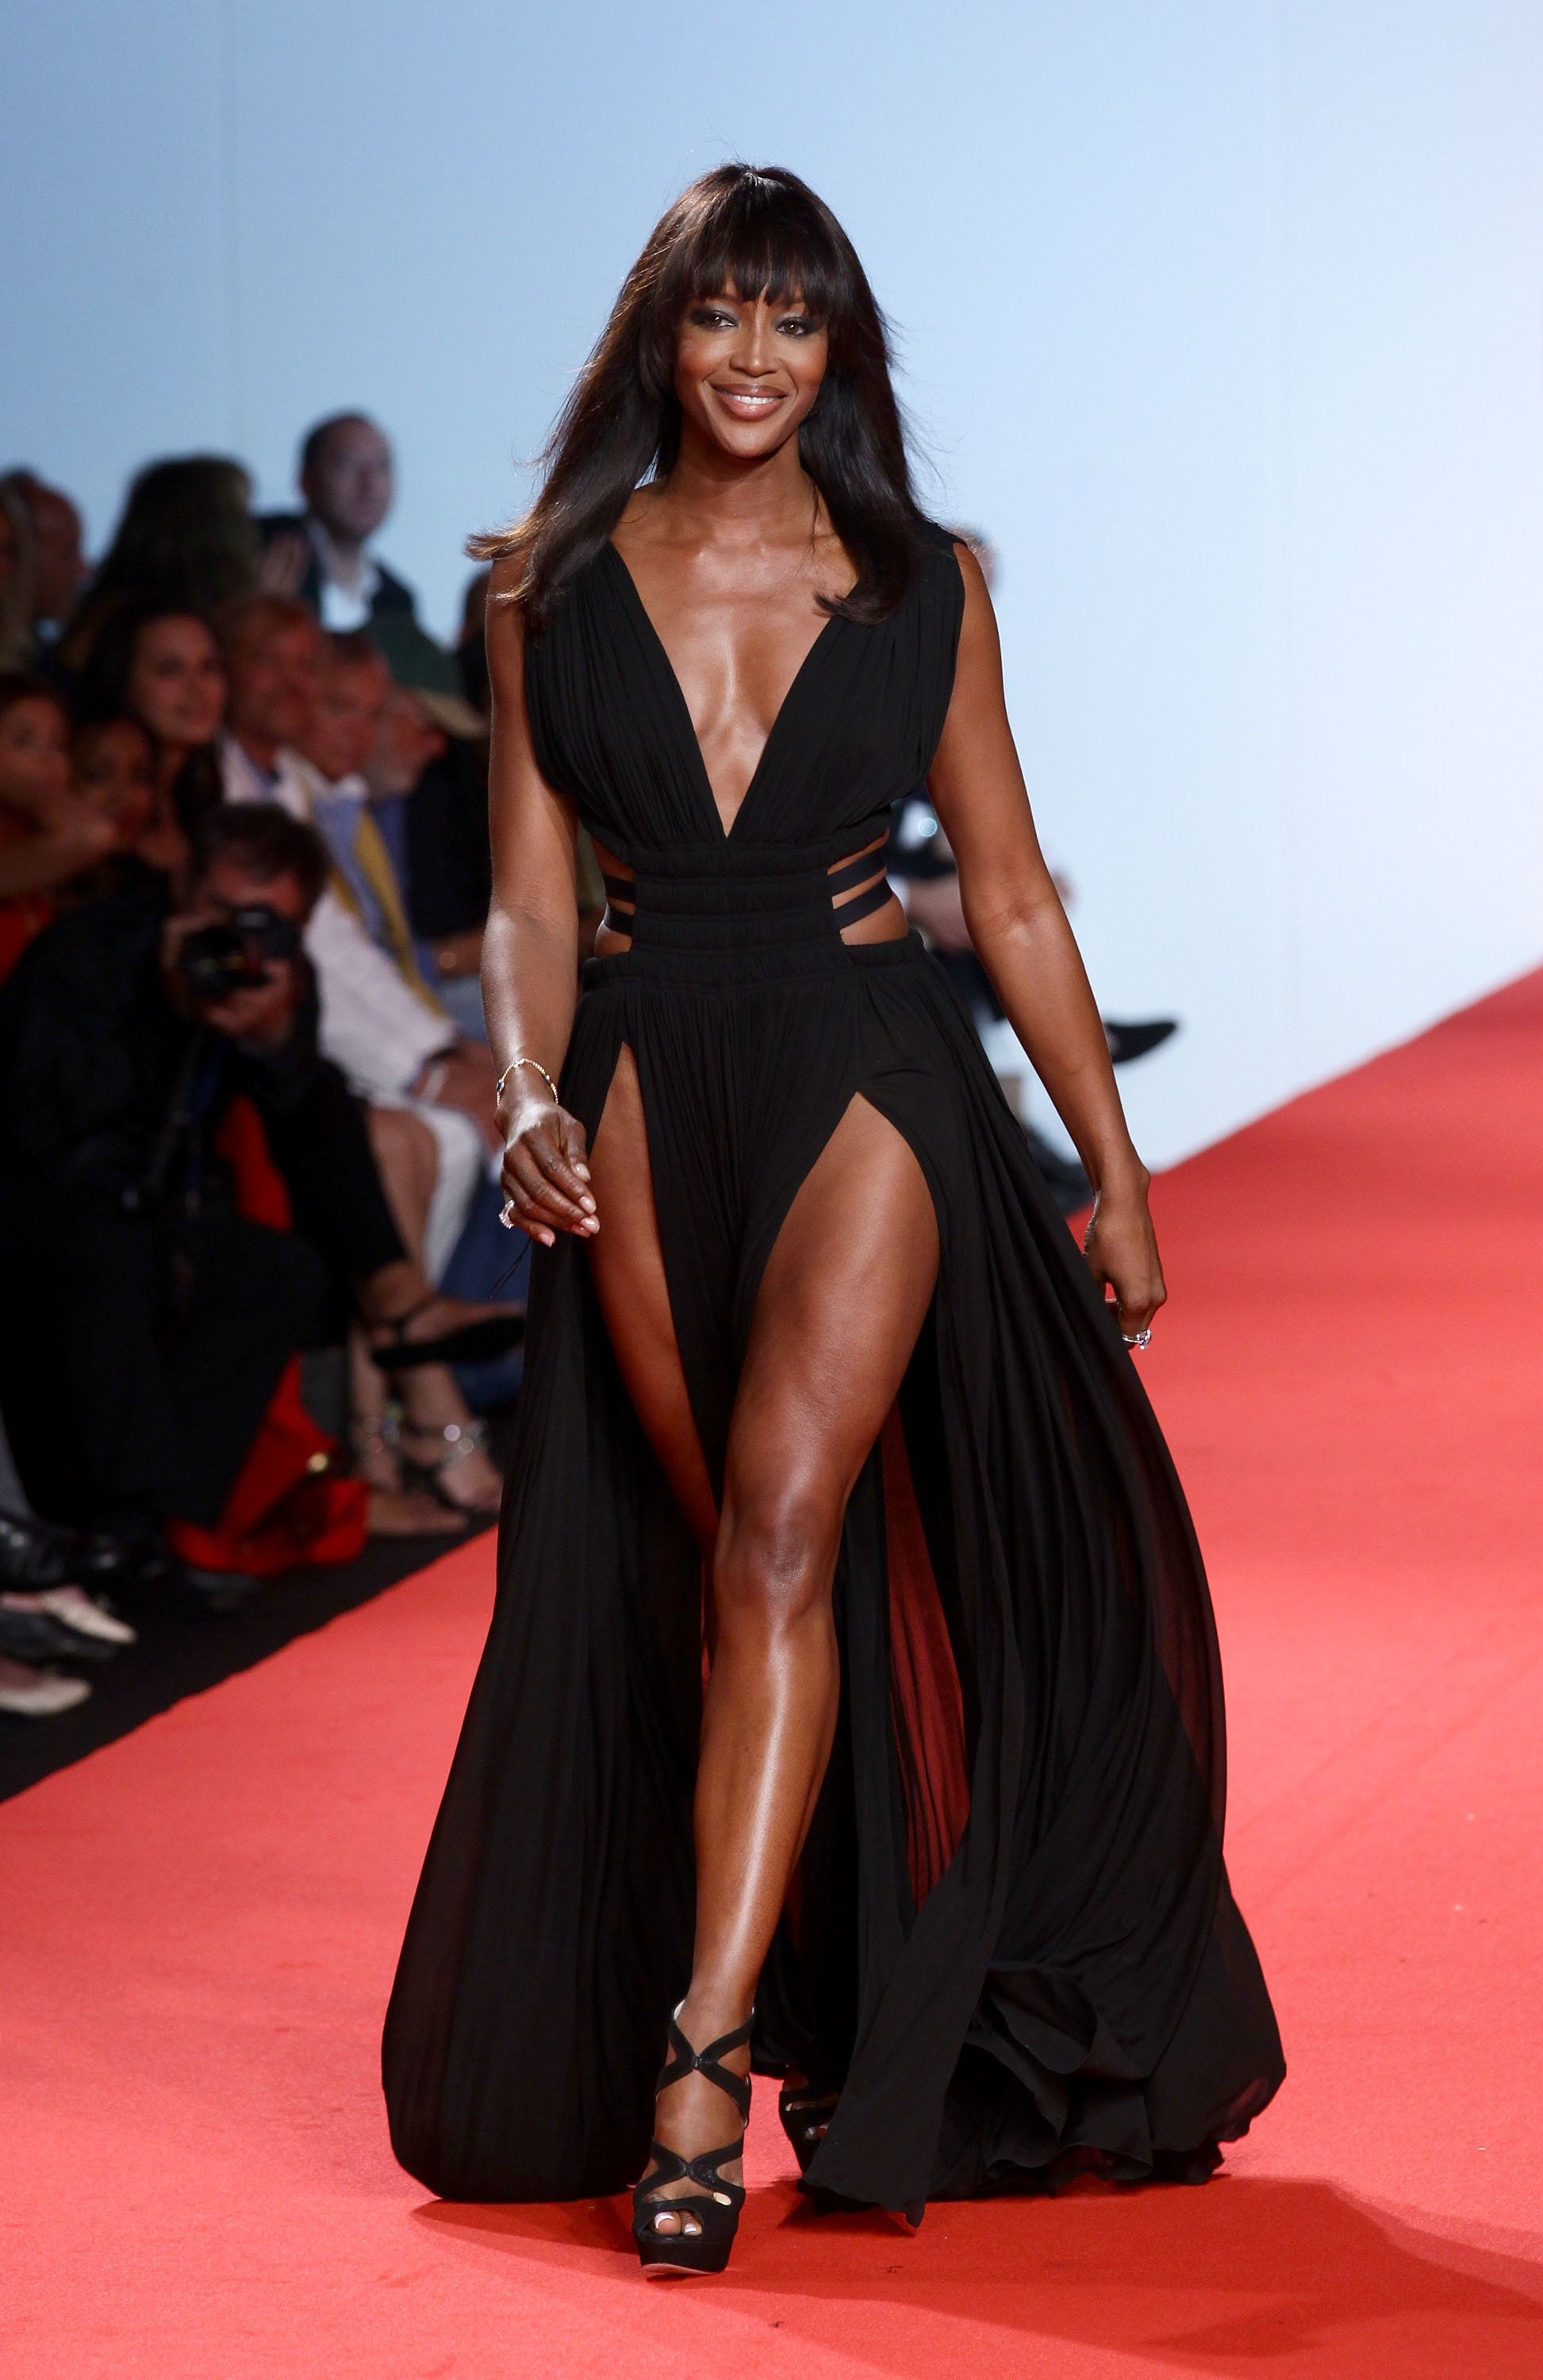 Walkingthe runway at the Fashion For Relief show during the Cannes Film Festival inFrance.